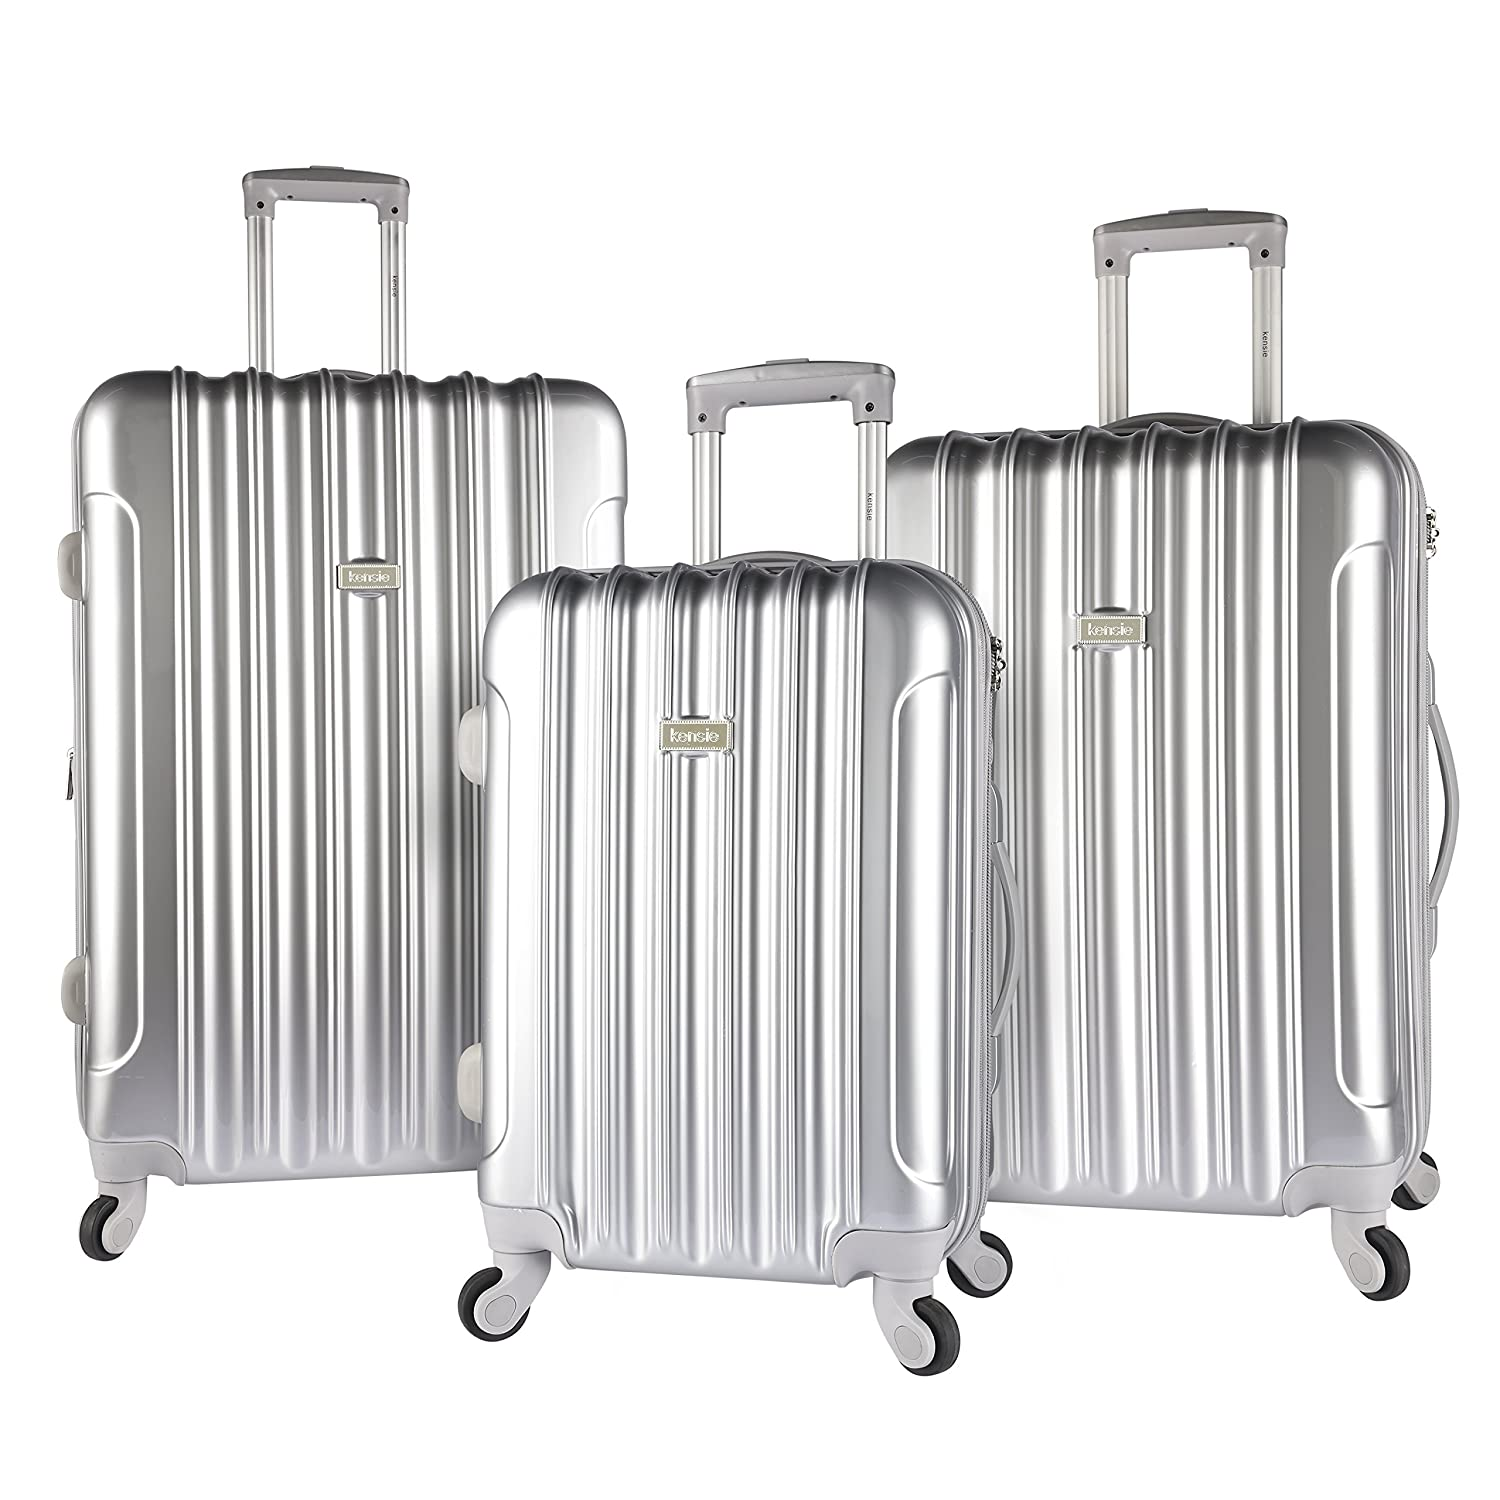 kensie 3 Piece Light Metallic Design 4-Wheel Luggage Set Silver Color Option Travelers Club Luggage KN-67903-SV